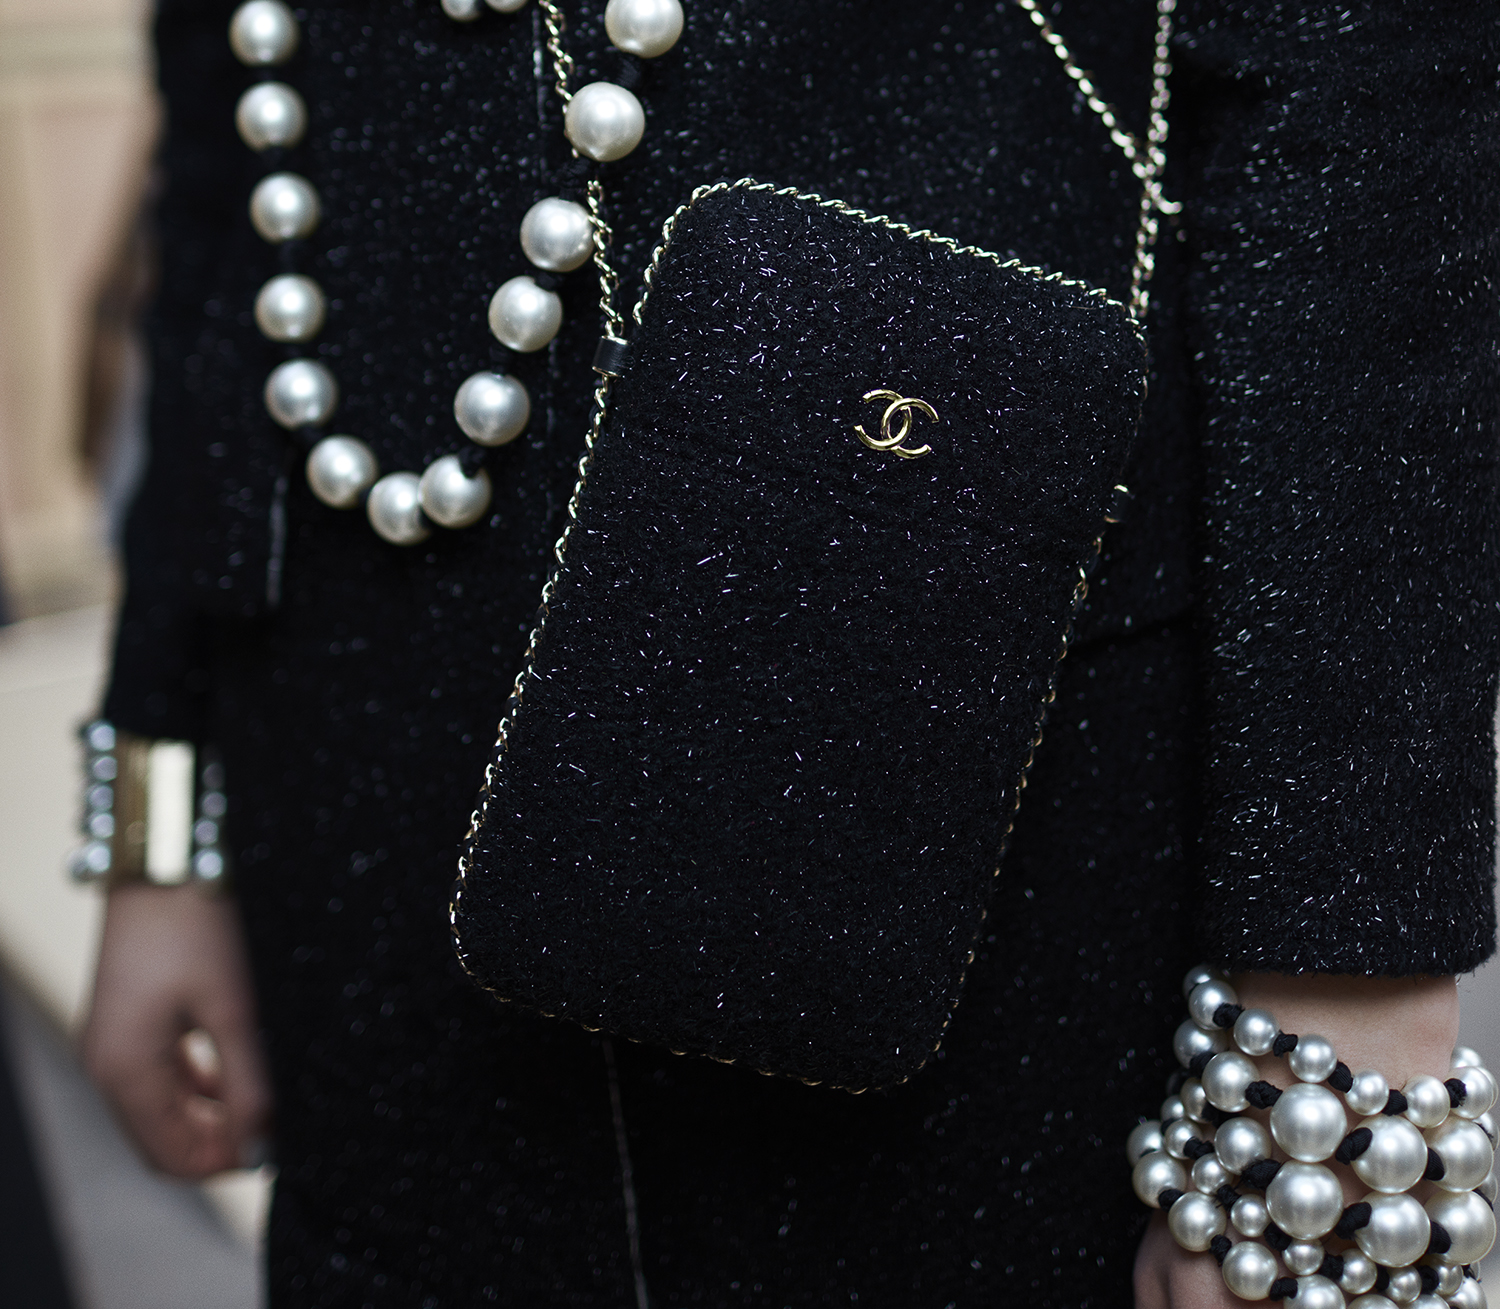 12_backstage-close-up-accessories-by-stcphane-gallois_ld